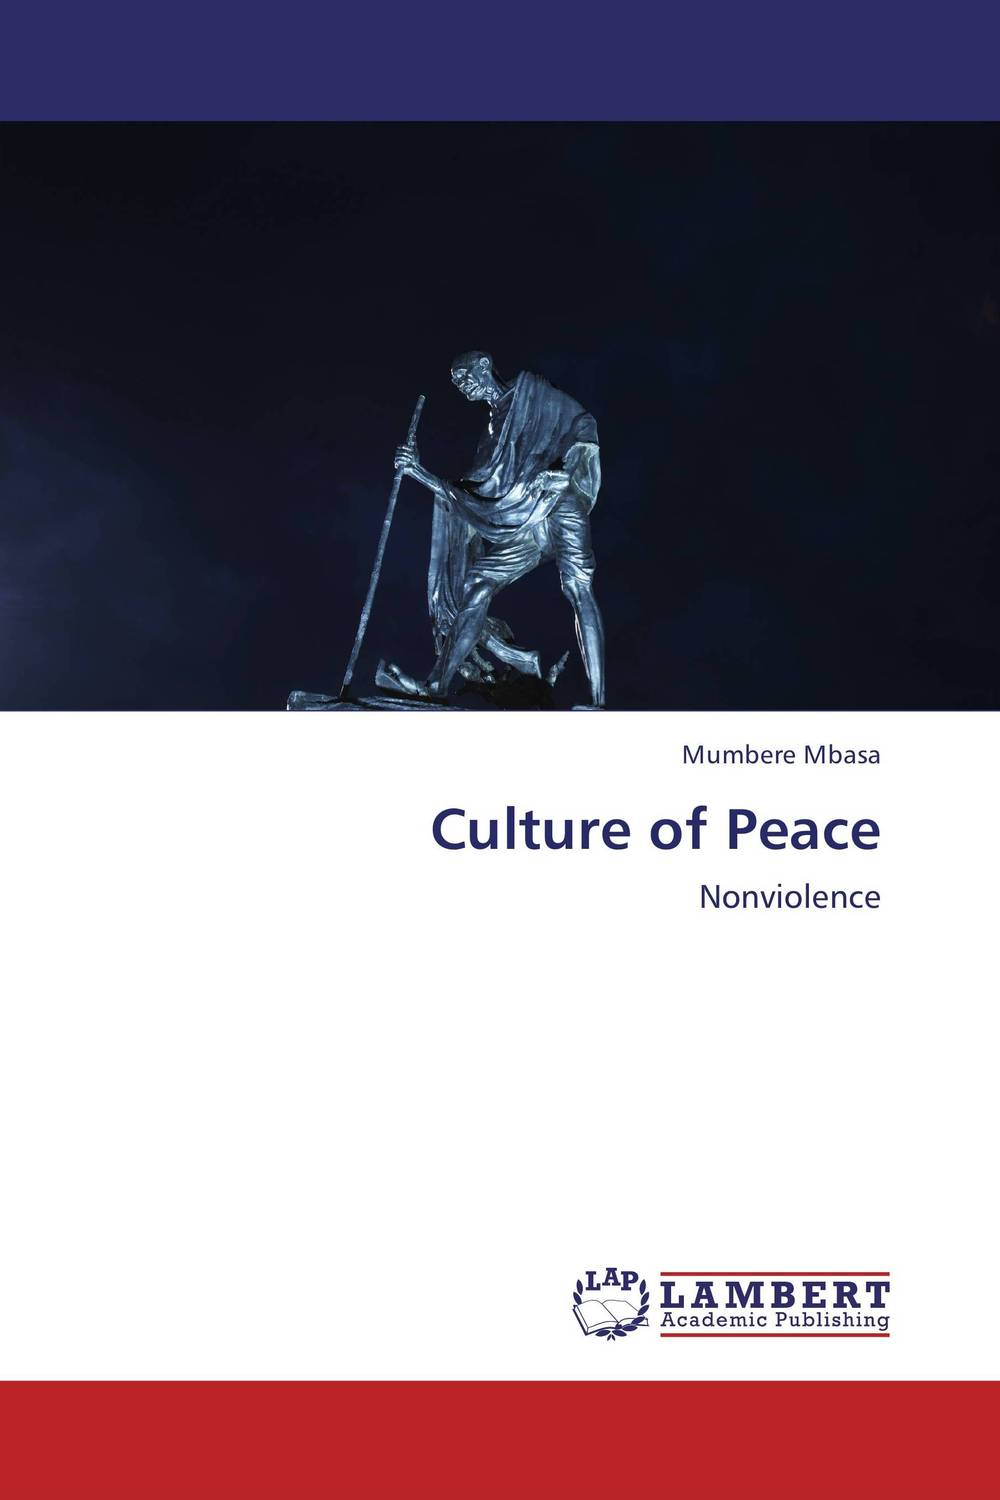 Culture of Peace human rights as means for peace